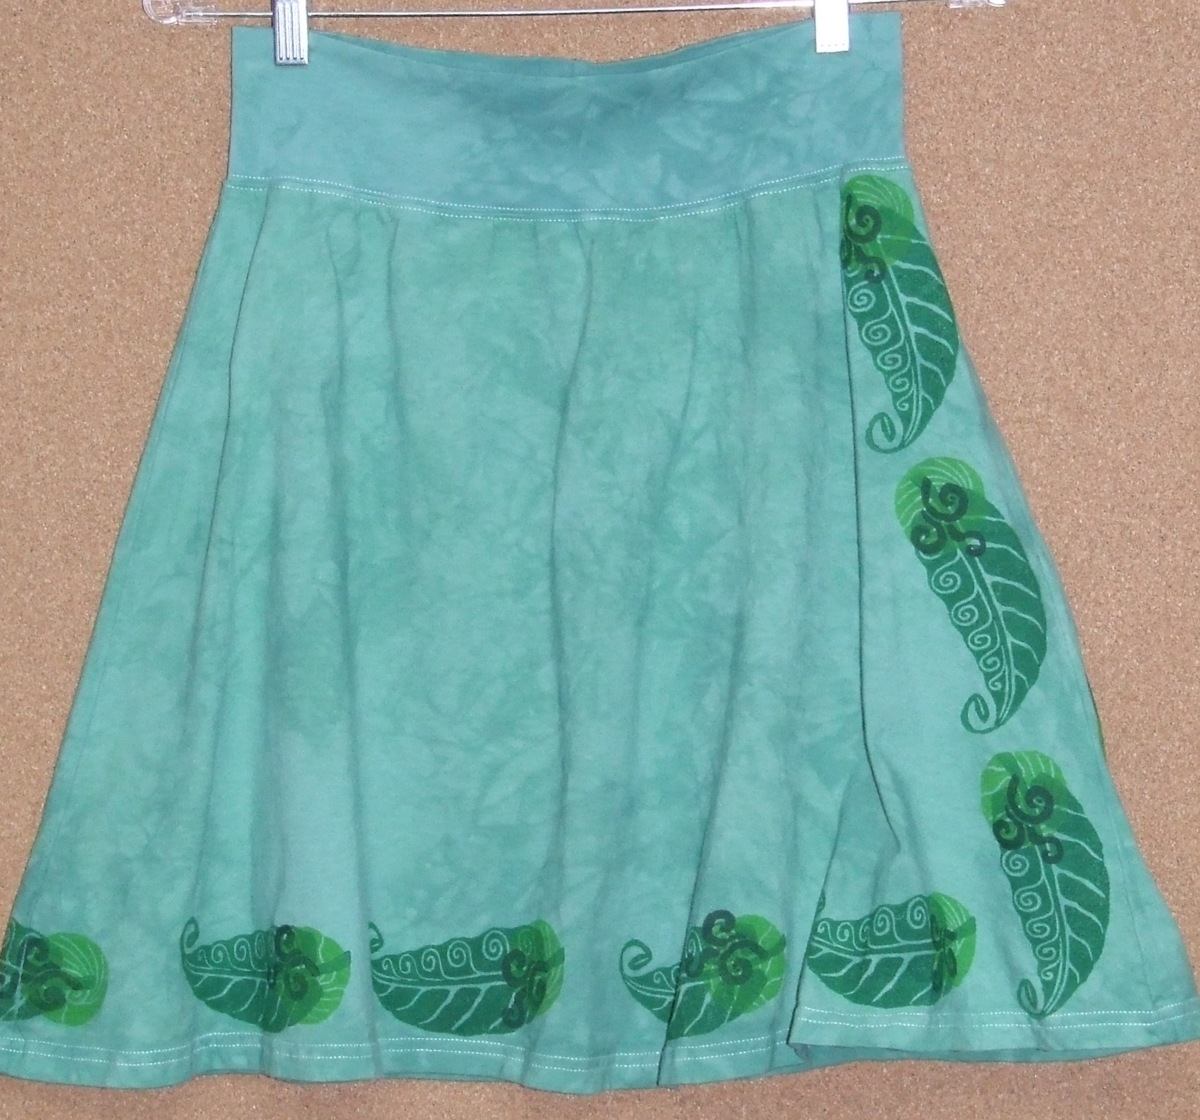 Cotton Skirt (large view)